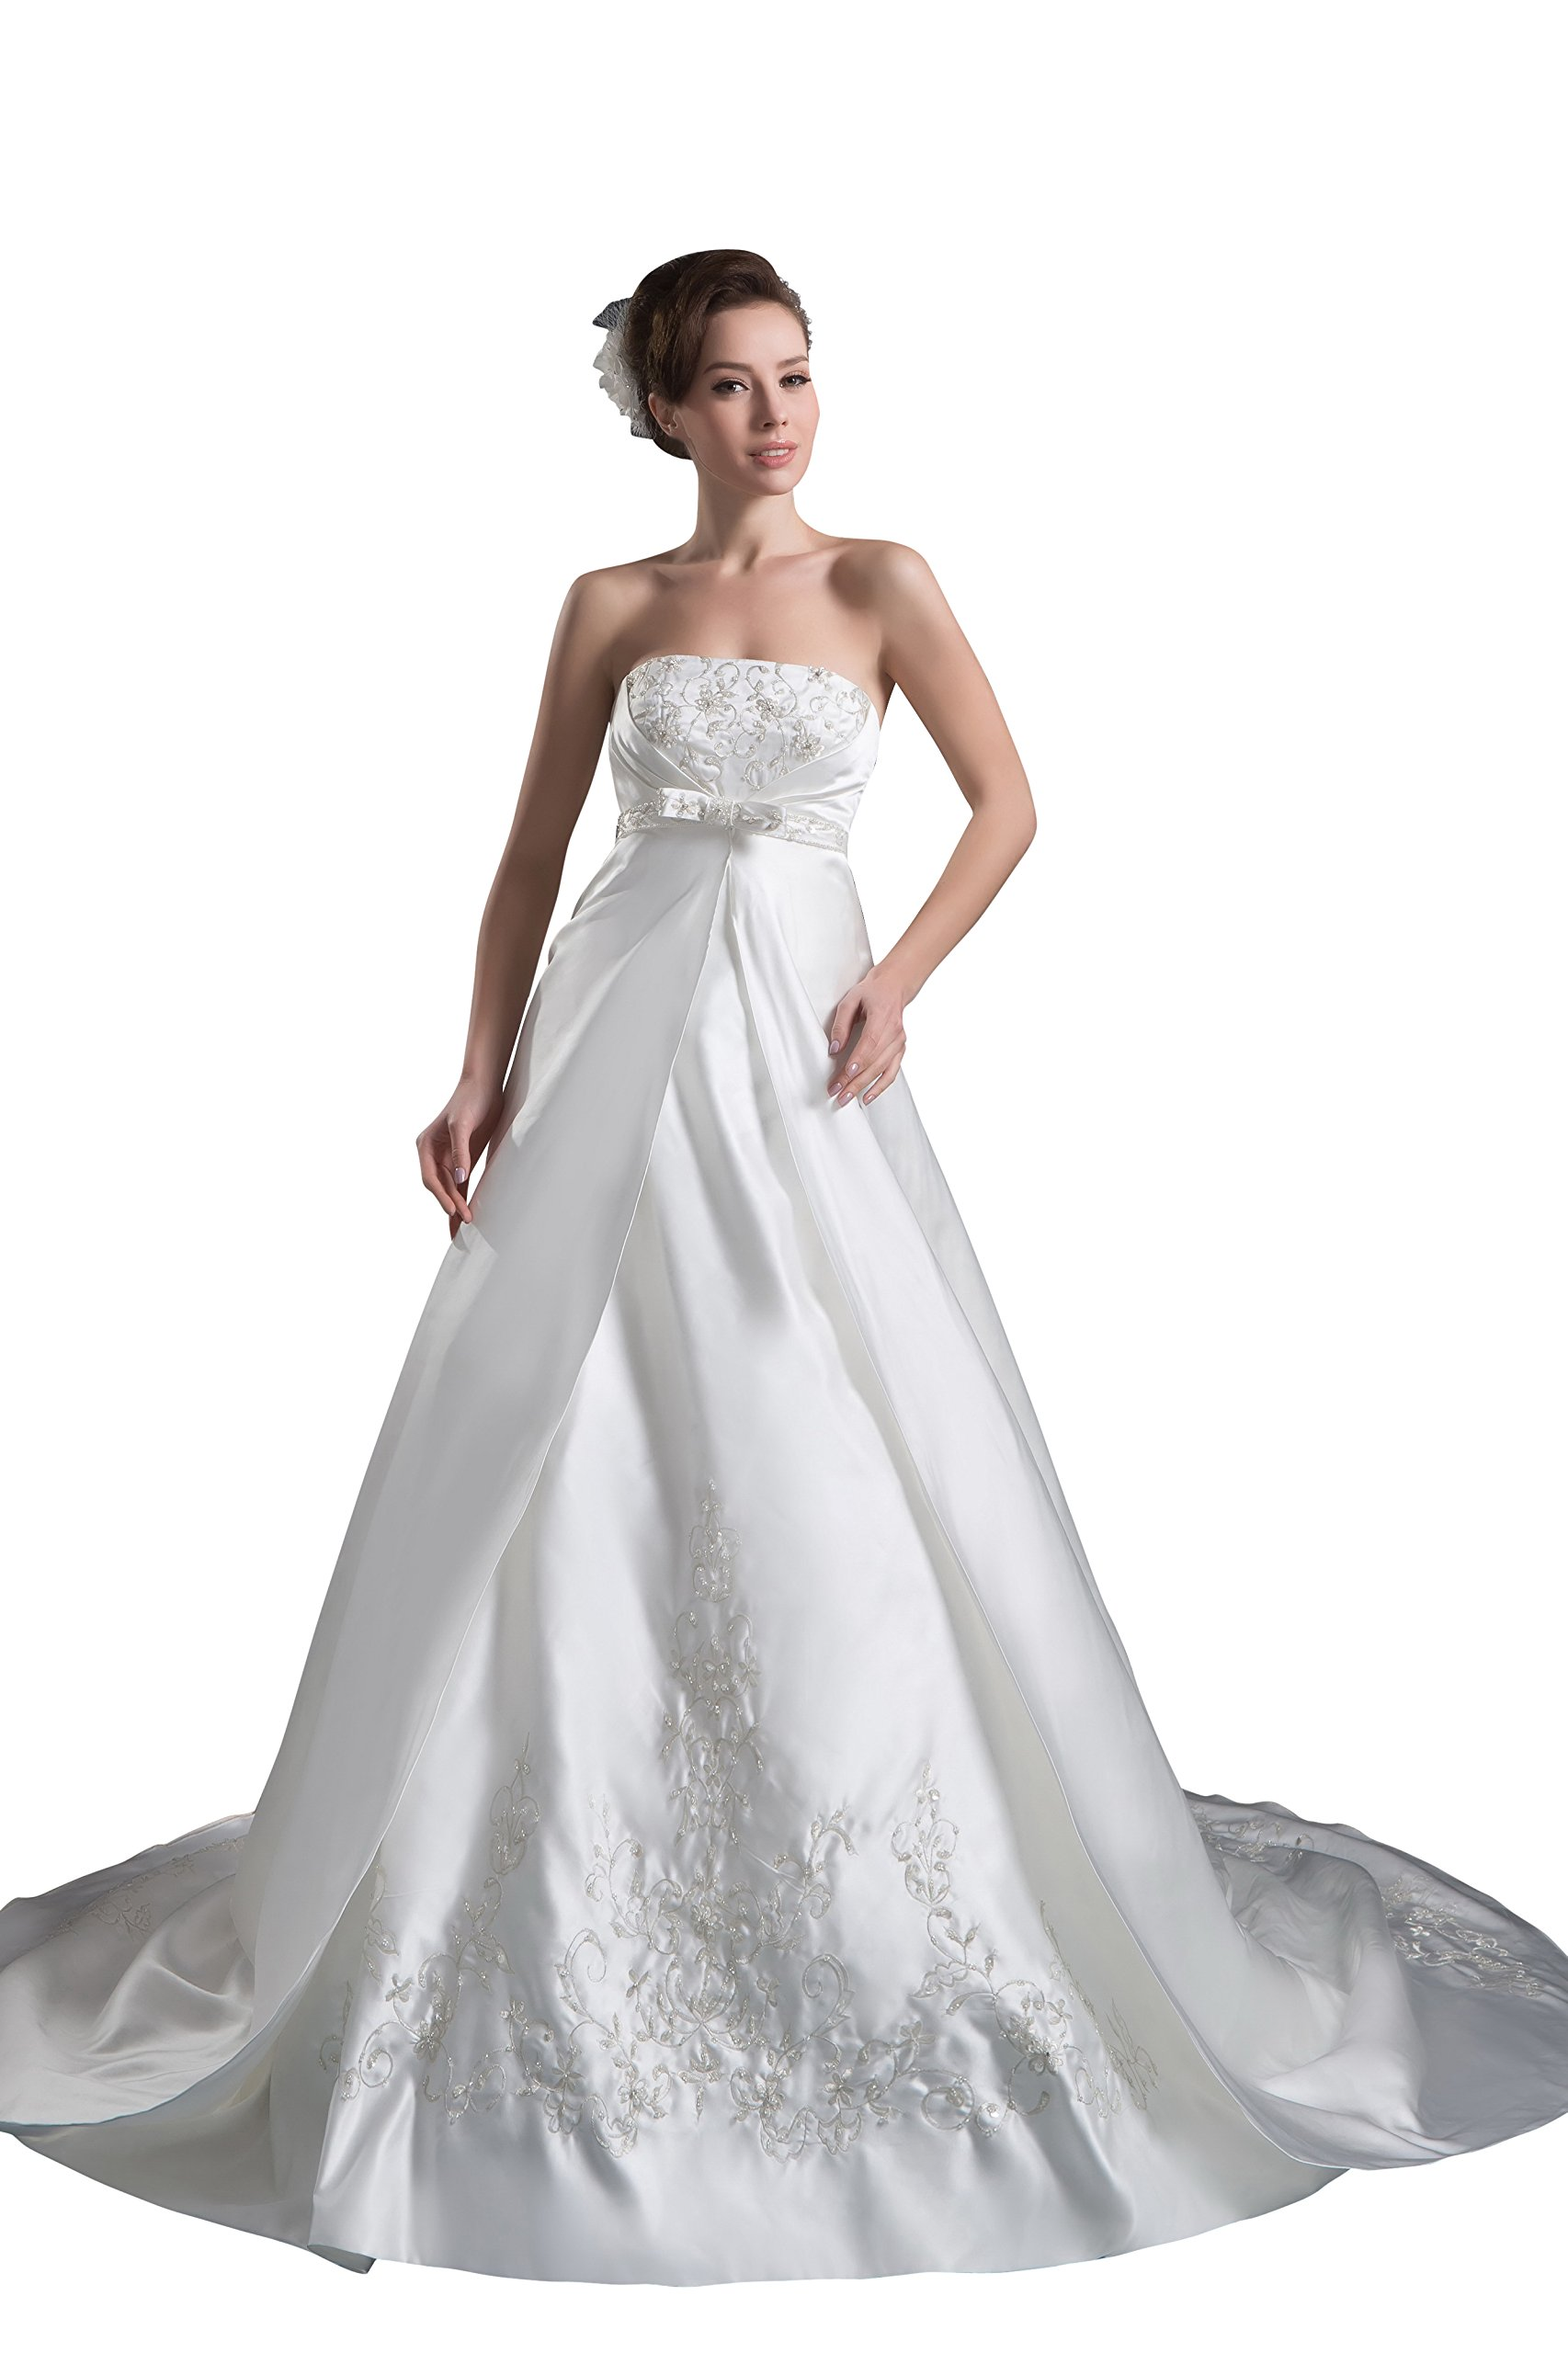 Vogue007 Womens Strapless Silk Taffeta Wedding Dress with Embroidery, White, Customized by Unknown